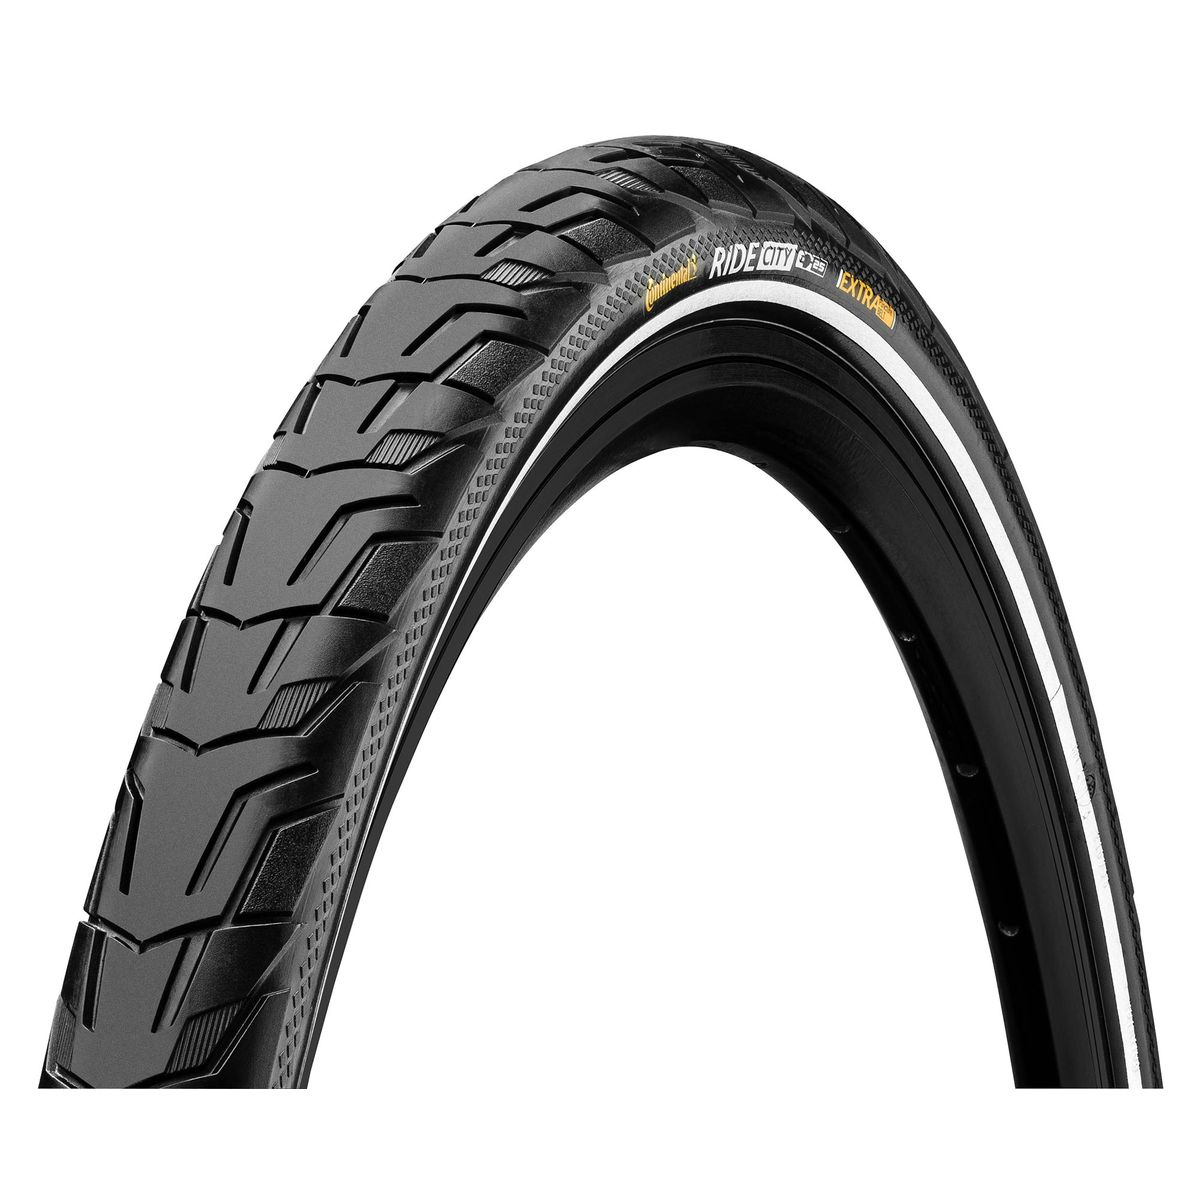 Ride City Reflex Trekking tyre